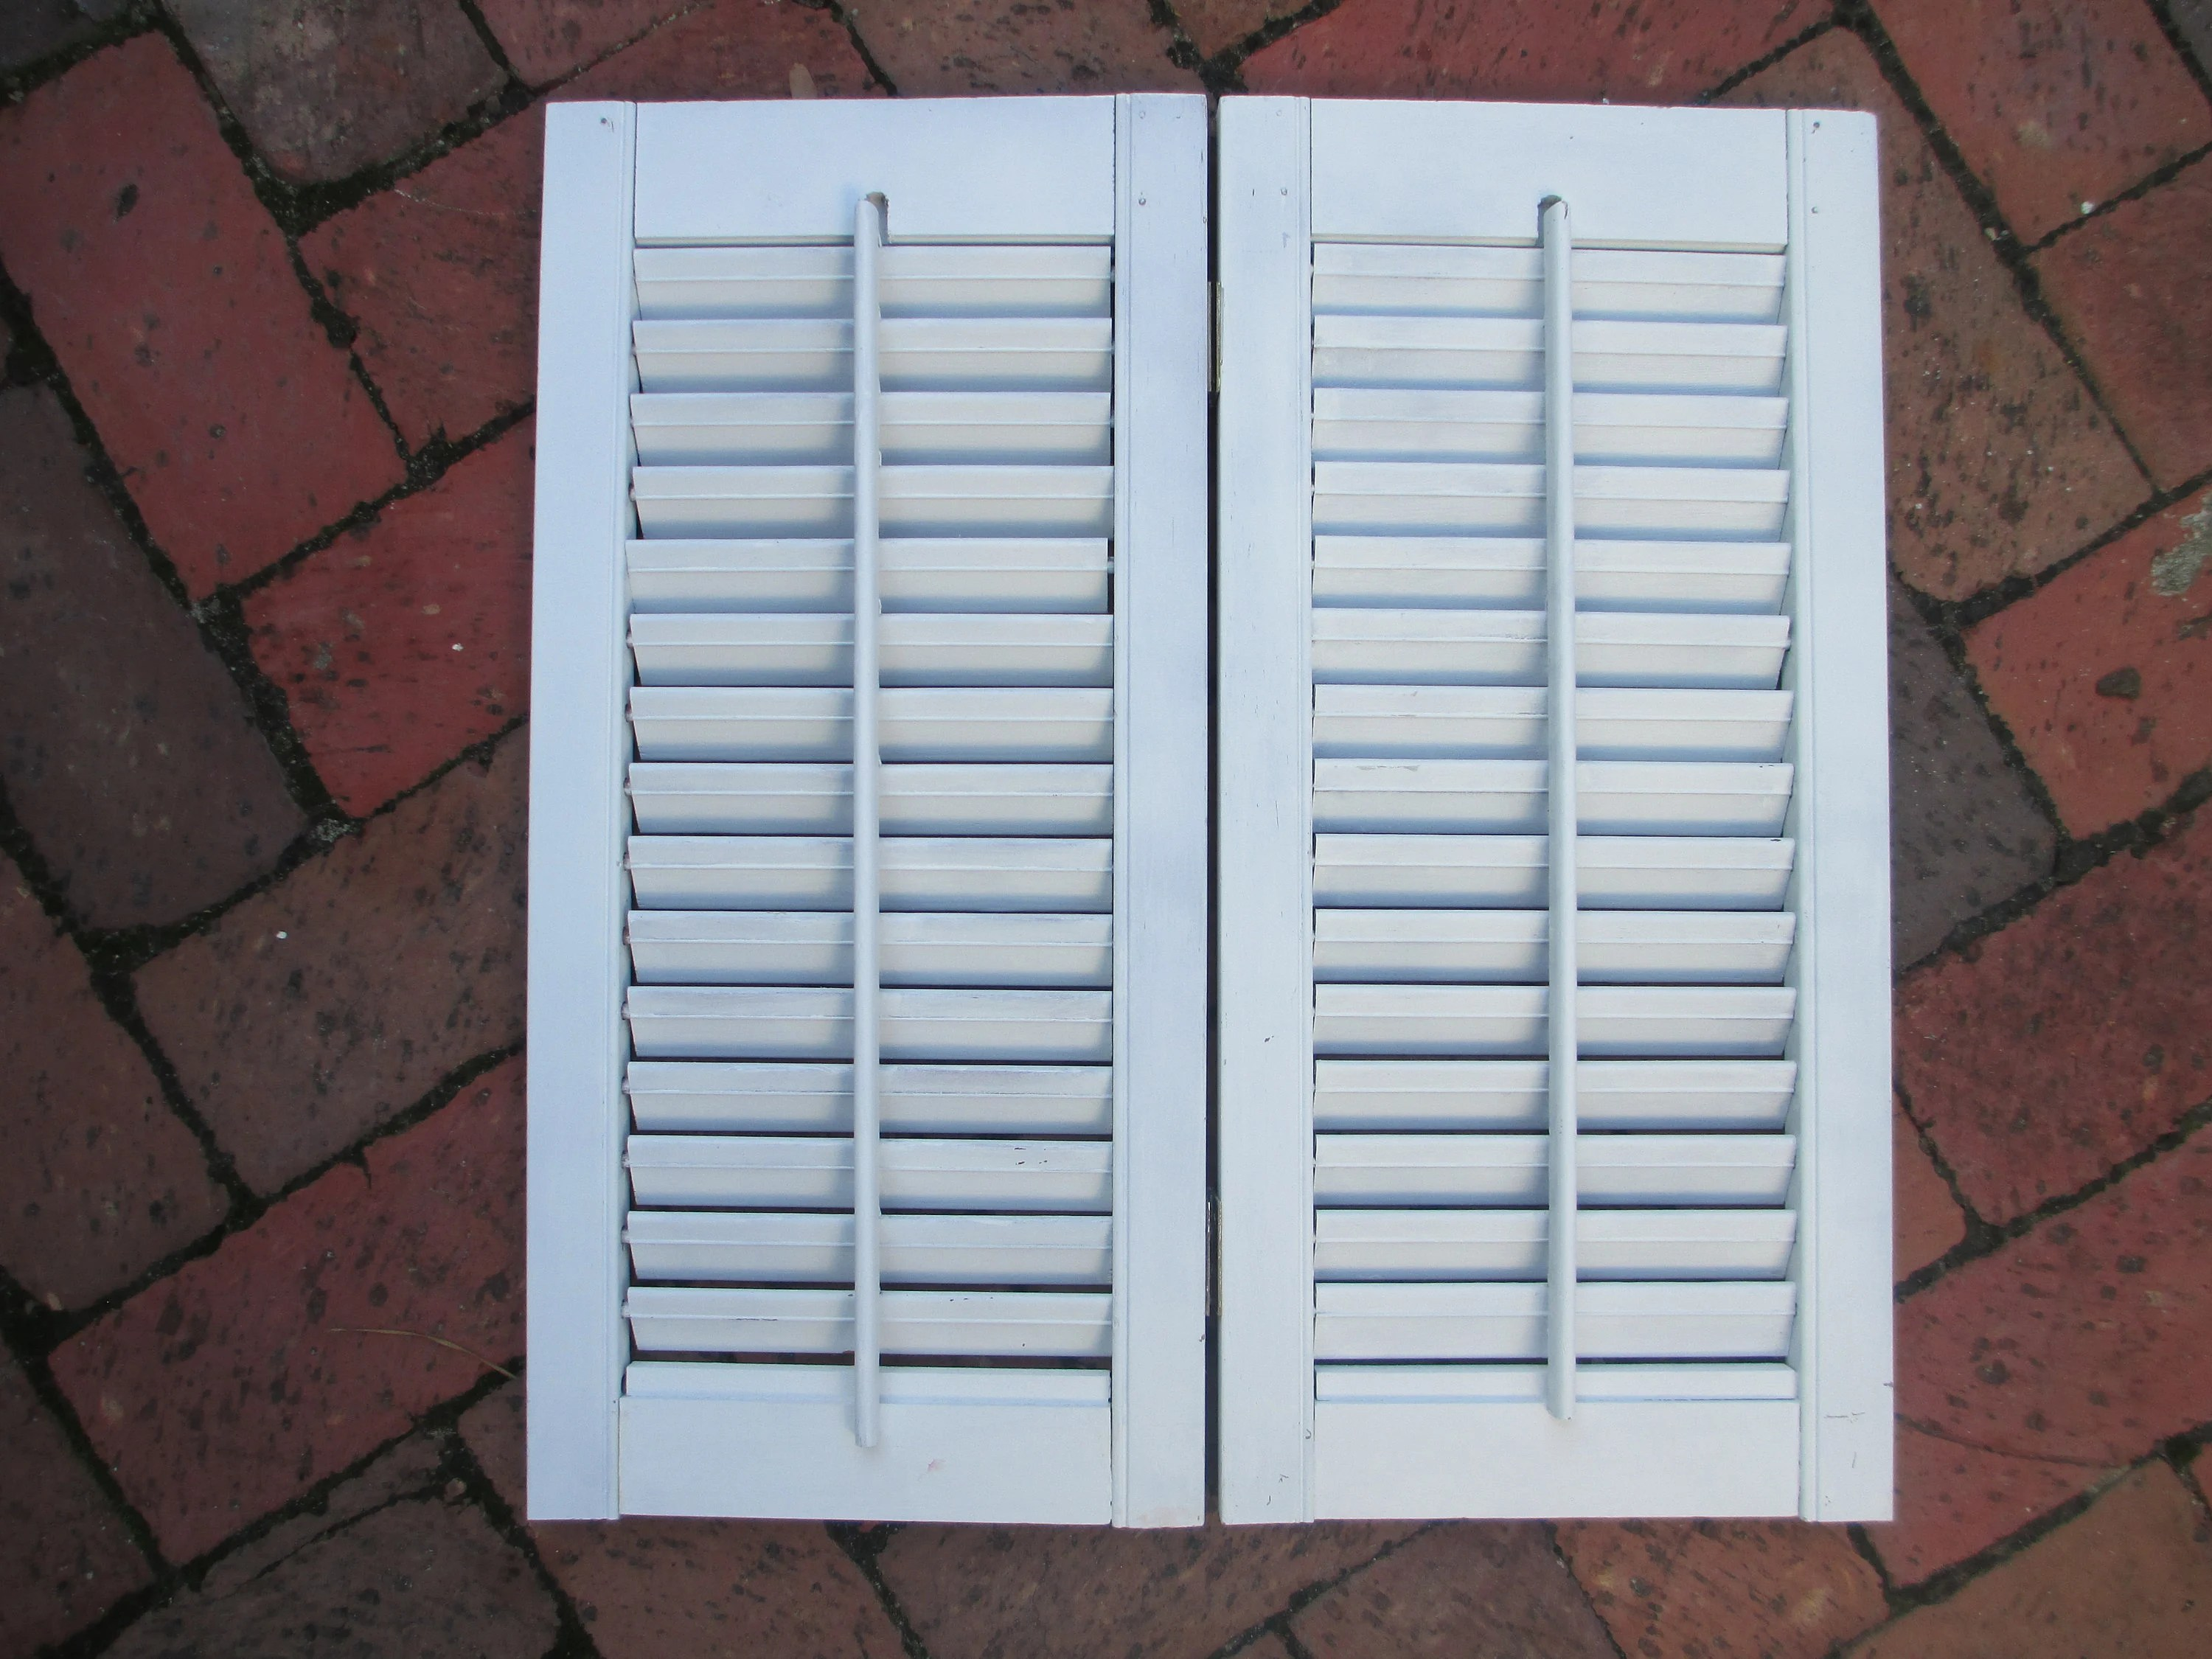 Two 19 Hinged White Shabby Wooden Louvered Interior Window Shutters That Open And Close With A Center Stick